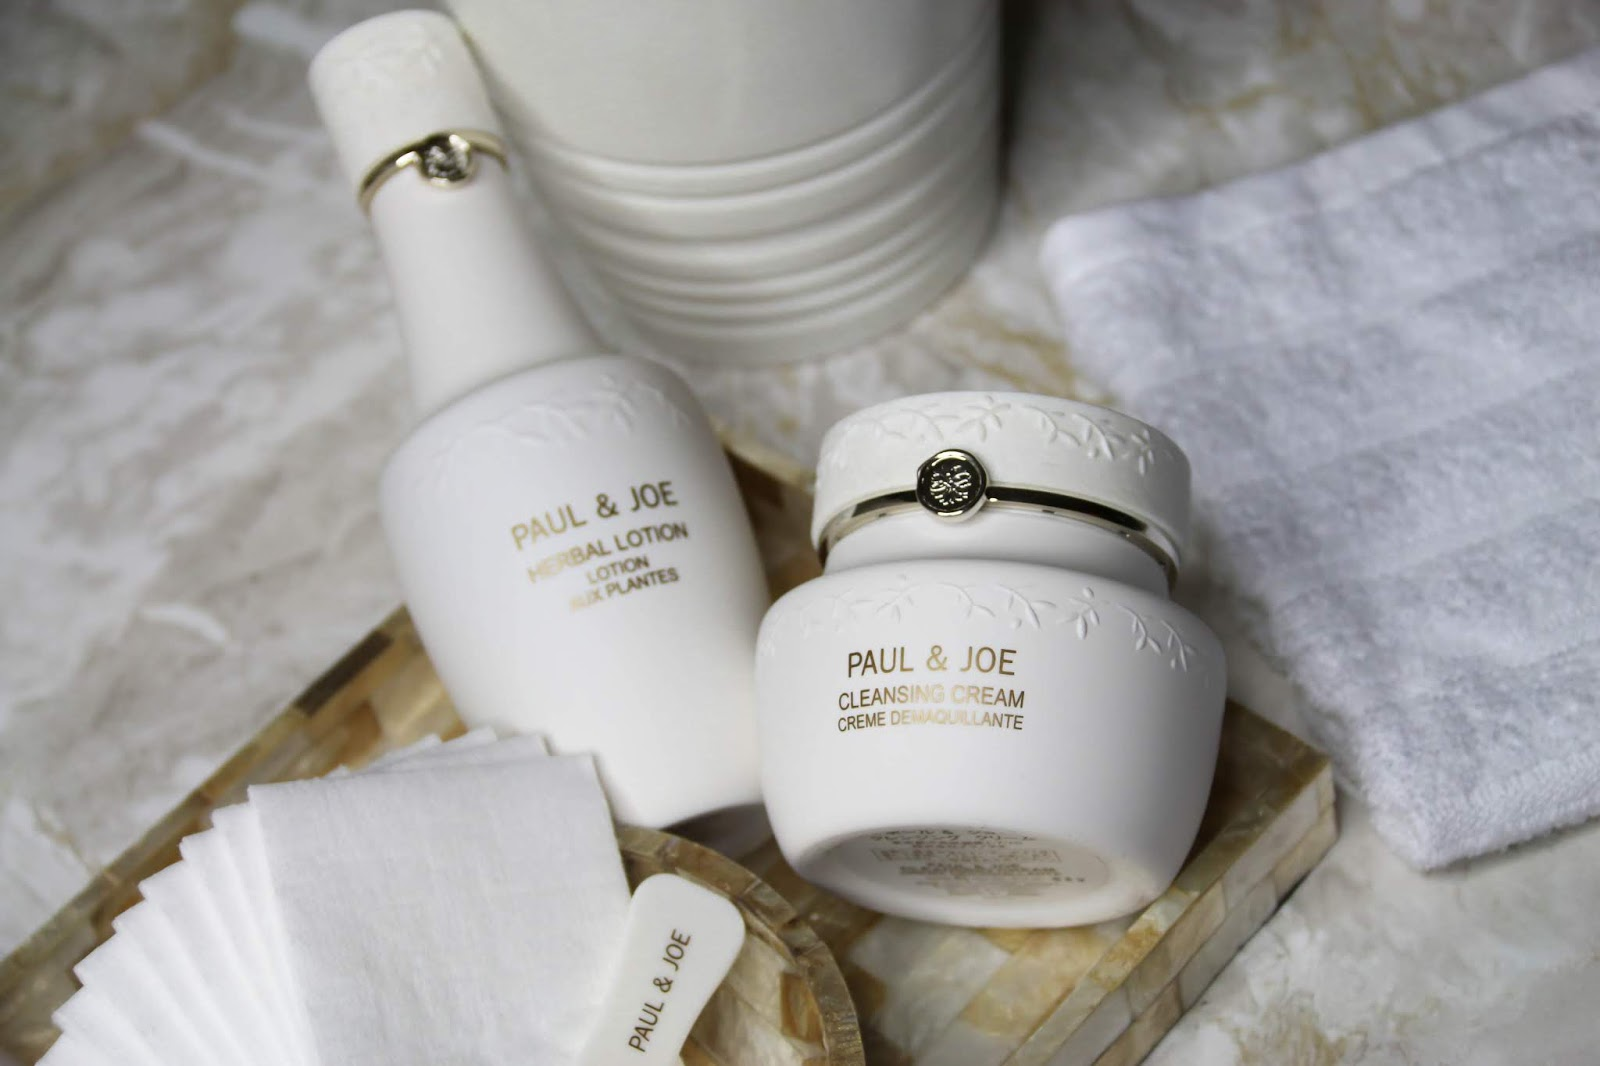 Paul & Joe Beaute Skincare Review by UK Beauty Blogger WhatLauraLoves